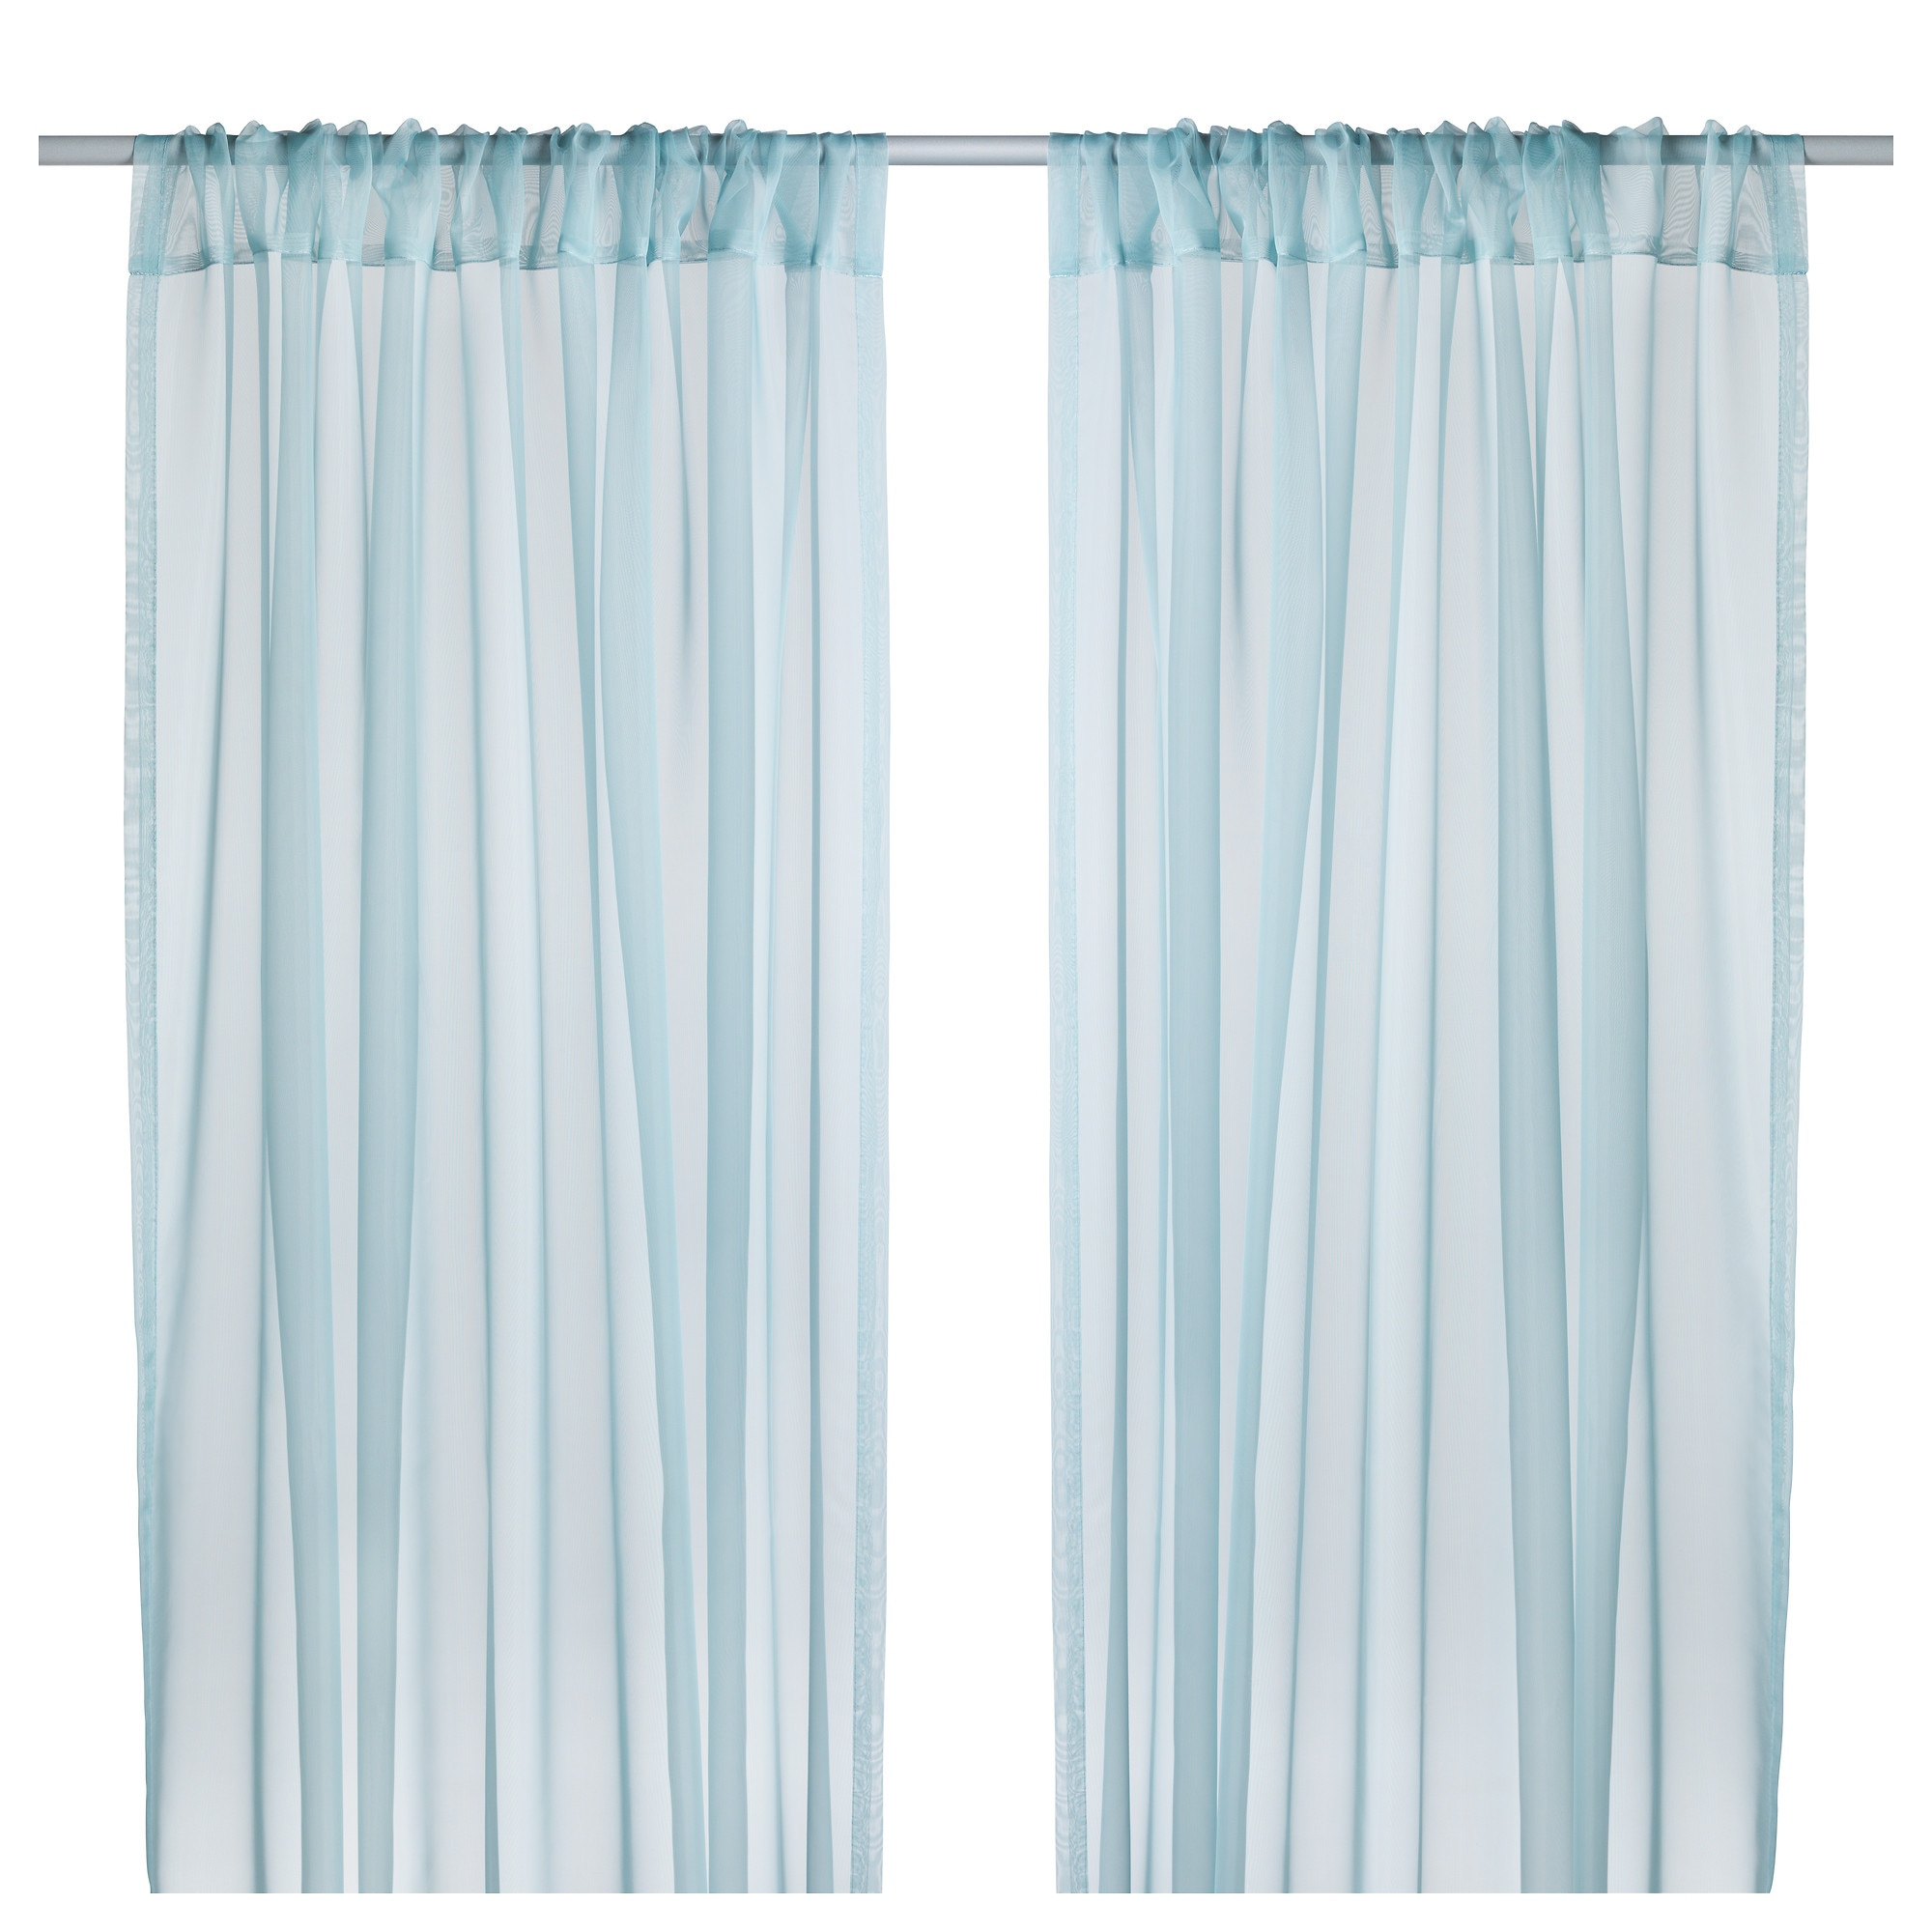 Light blue bedroom curtains - Ikea Curtains Light Blue Curtains Living Room Bedroom Curtains Ikea Downloadable